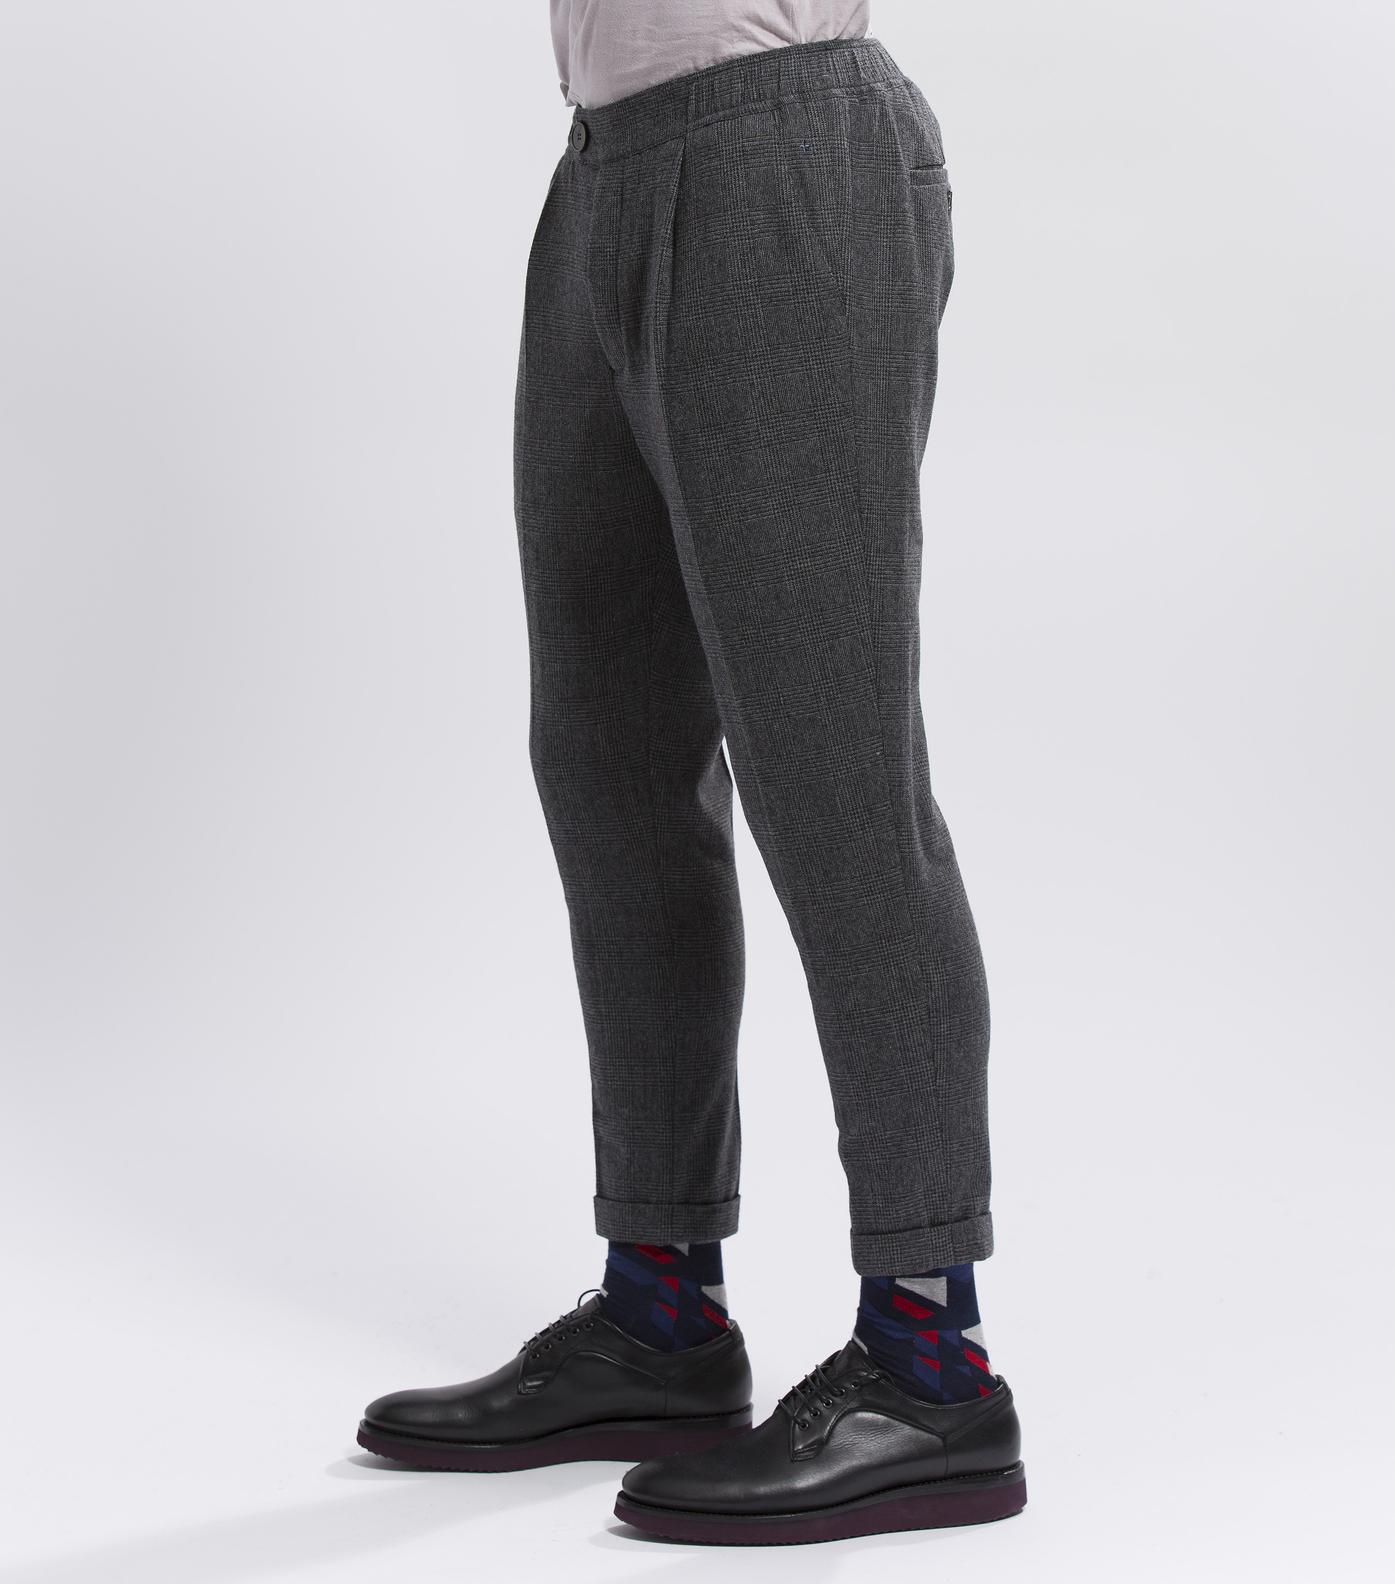 PANTS GN11 - Grey